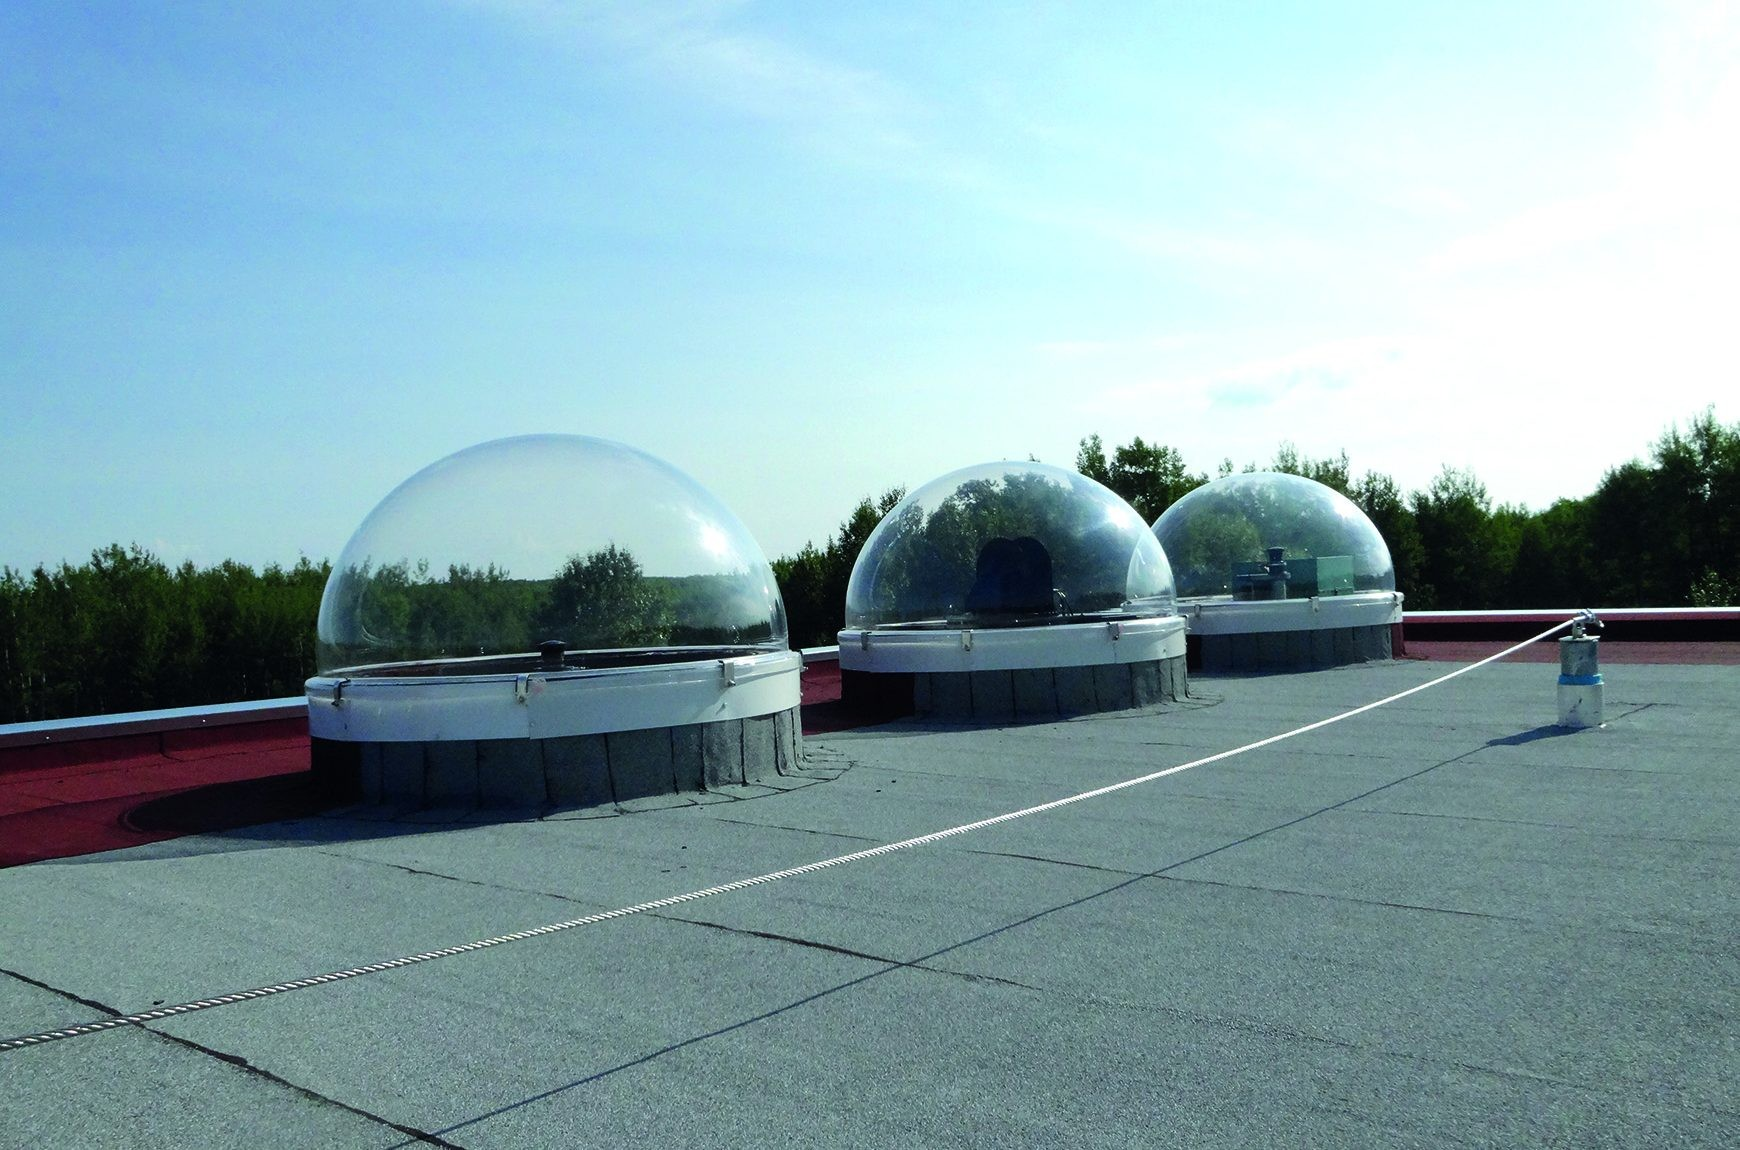 Modified CCDs with fisheye lenses sit within these domes in Athabasca. Credit: Melanie Windridge